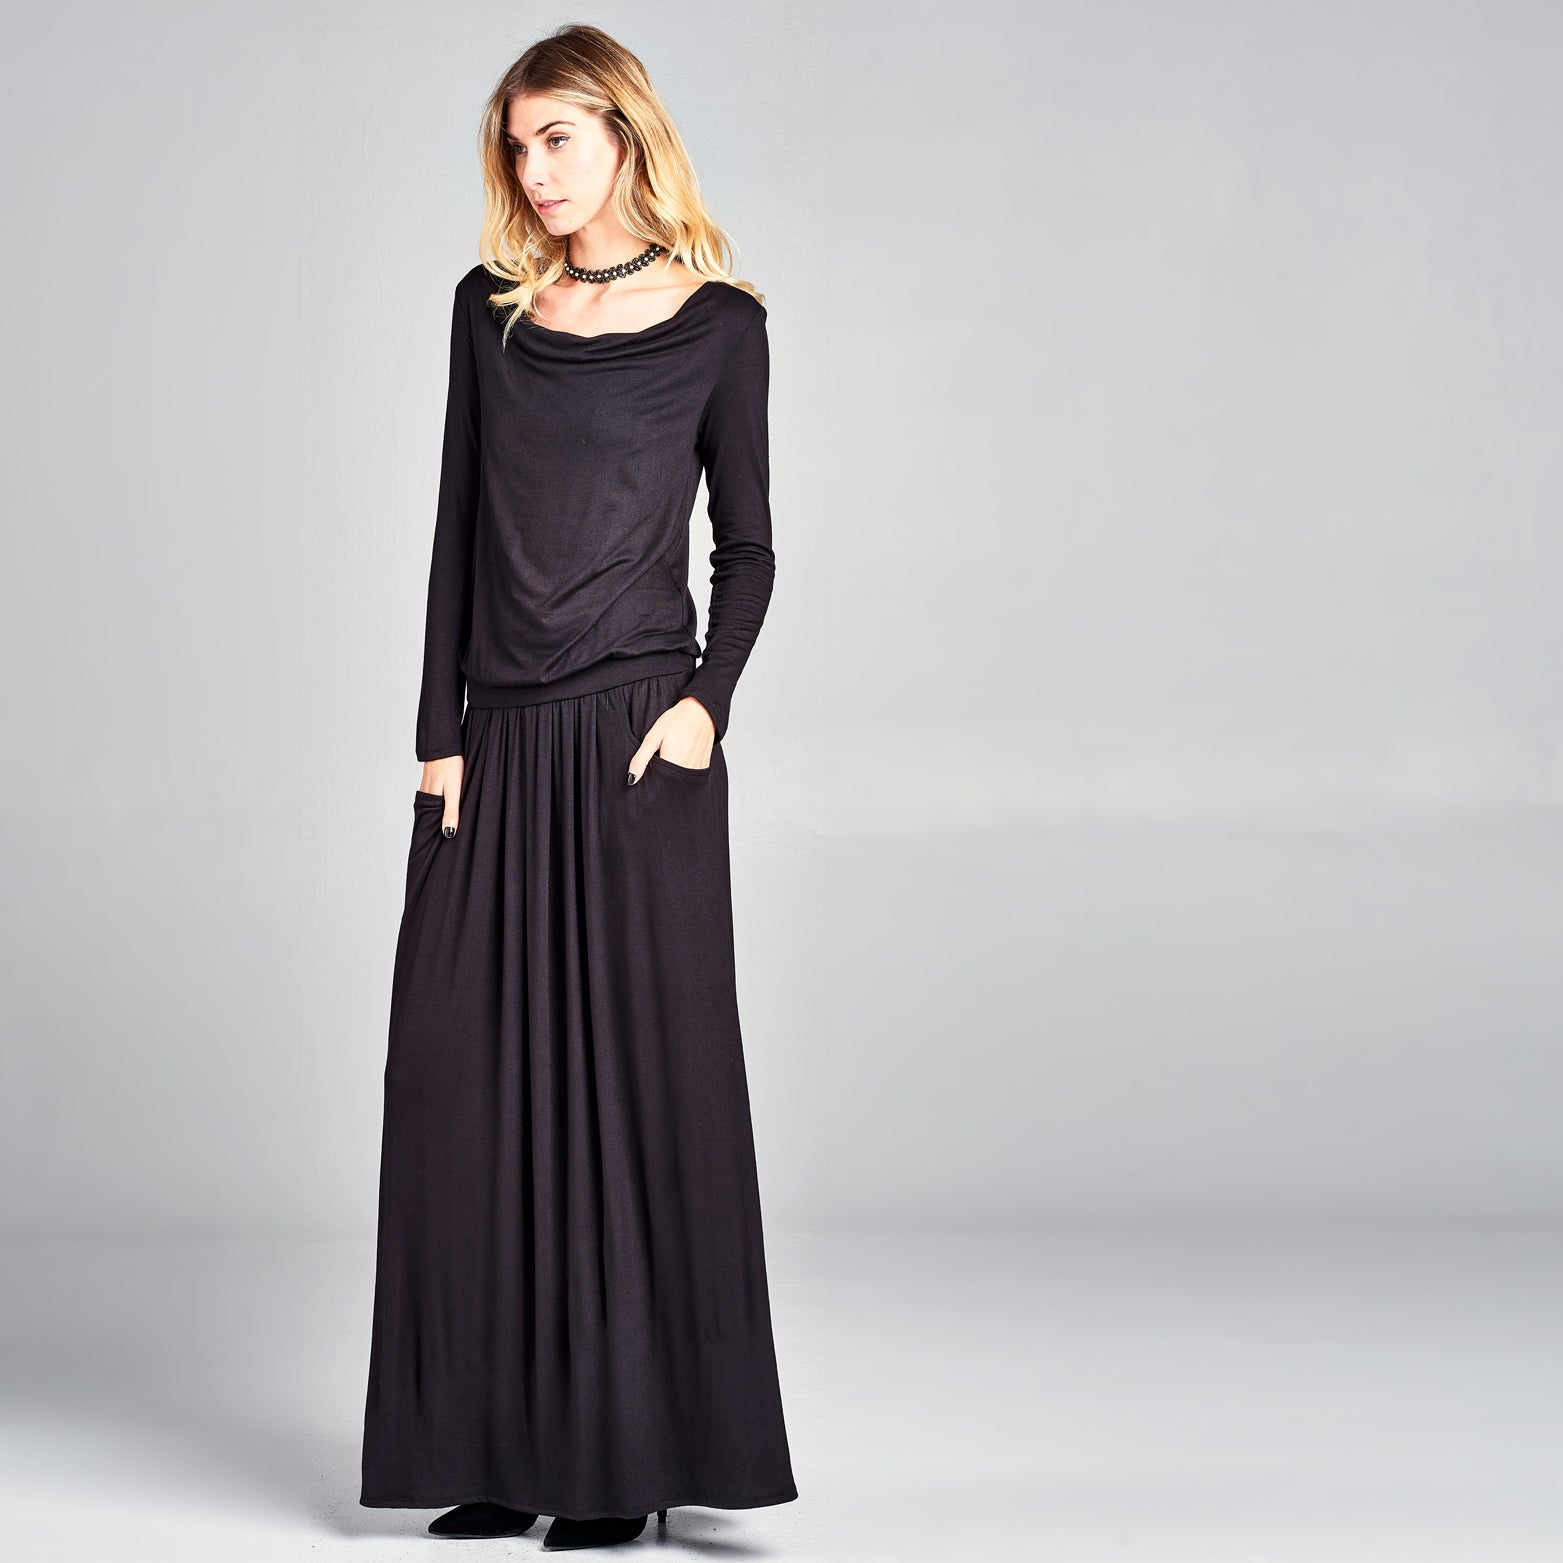 Cowl Neck Long Sleeve Maxi Dress